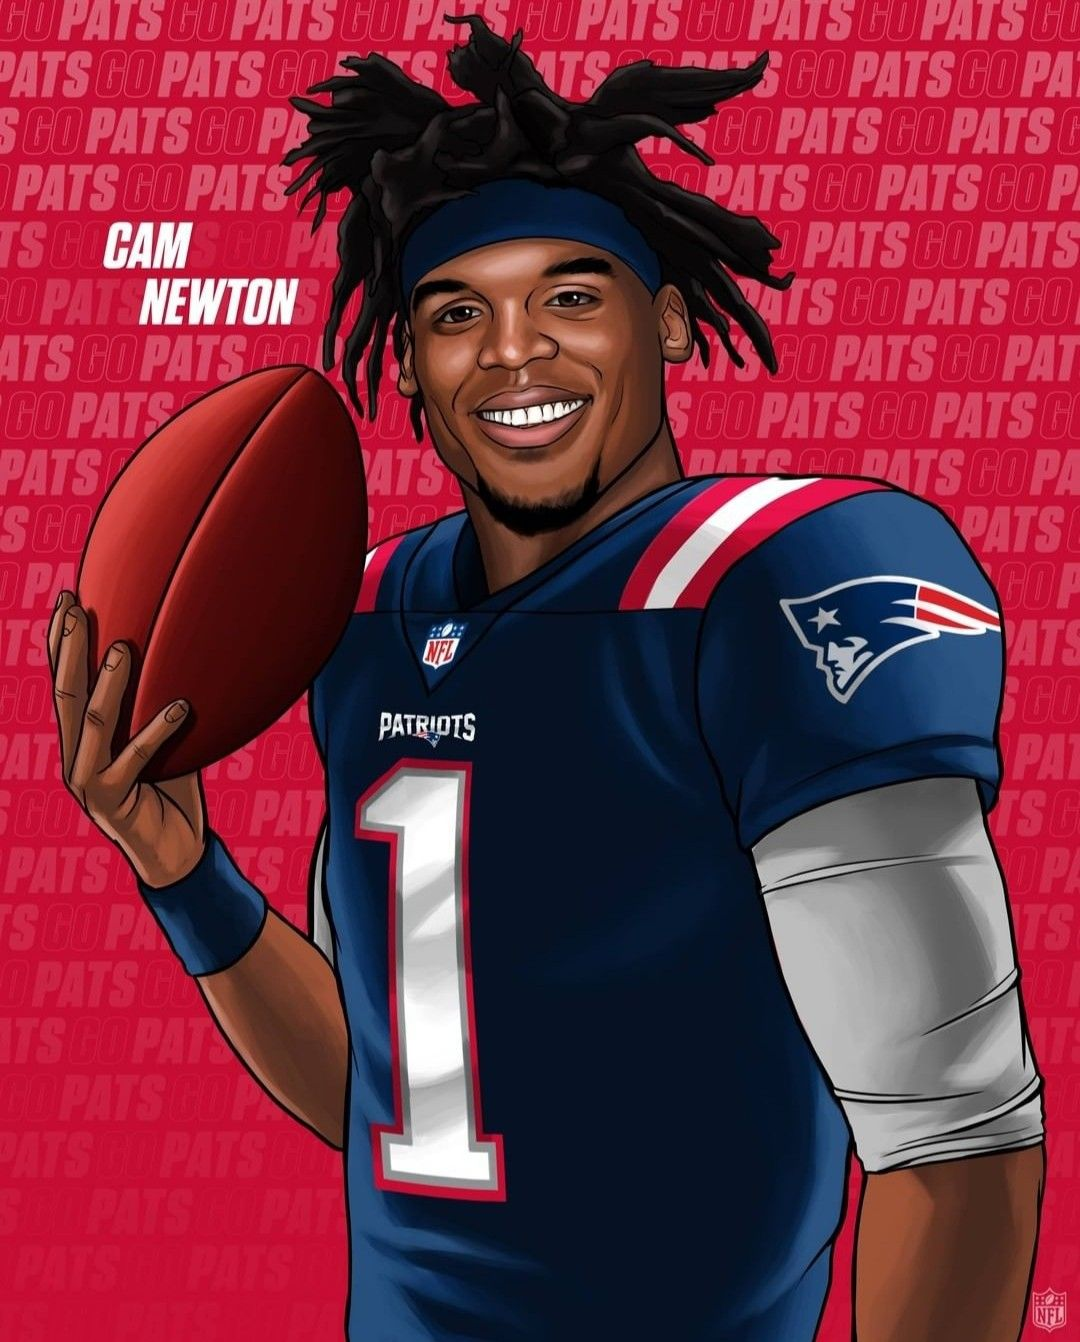 Cam Newton To New England Patriots In 2020 New England Patriots Football Patriots Football Nfl Football Pictures